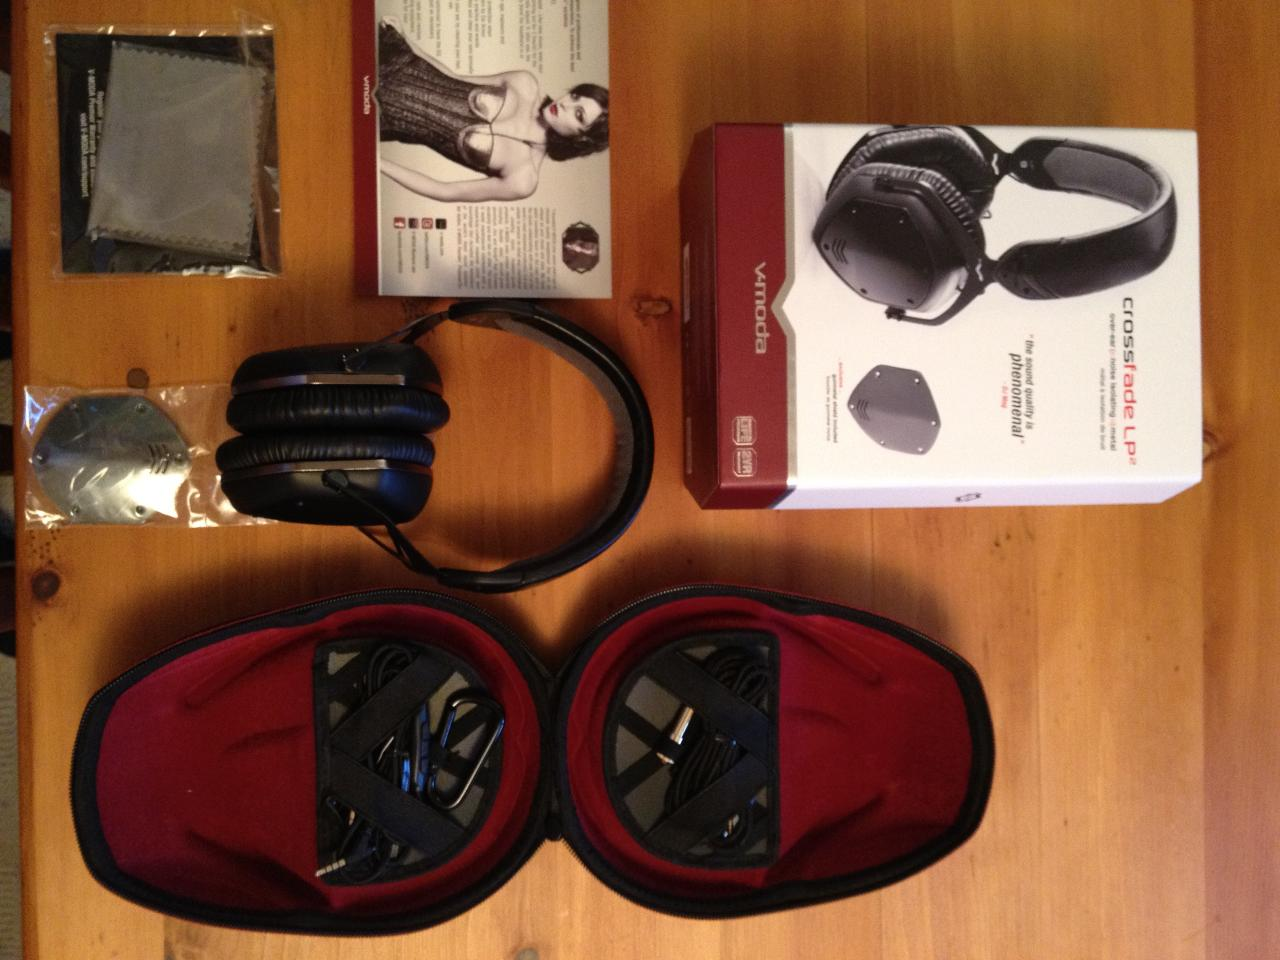 V-Moda Crossfade LP2, out of the box